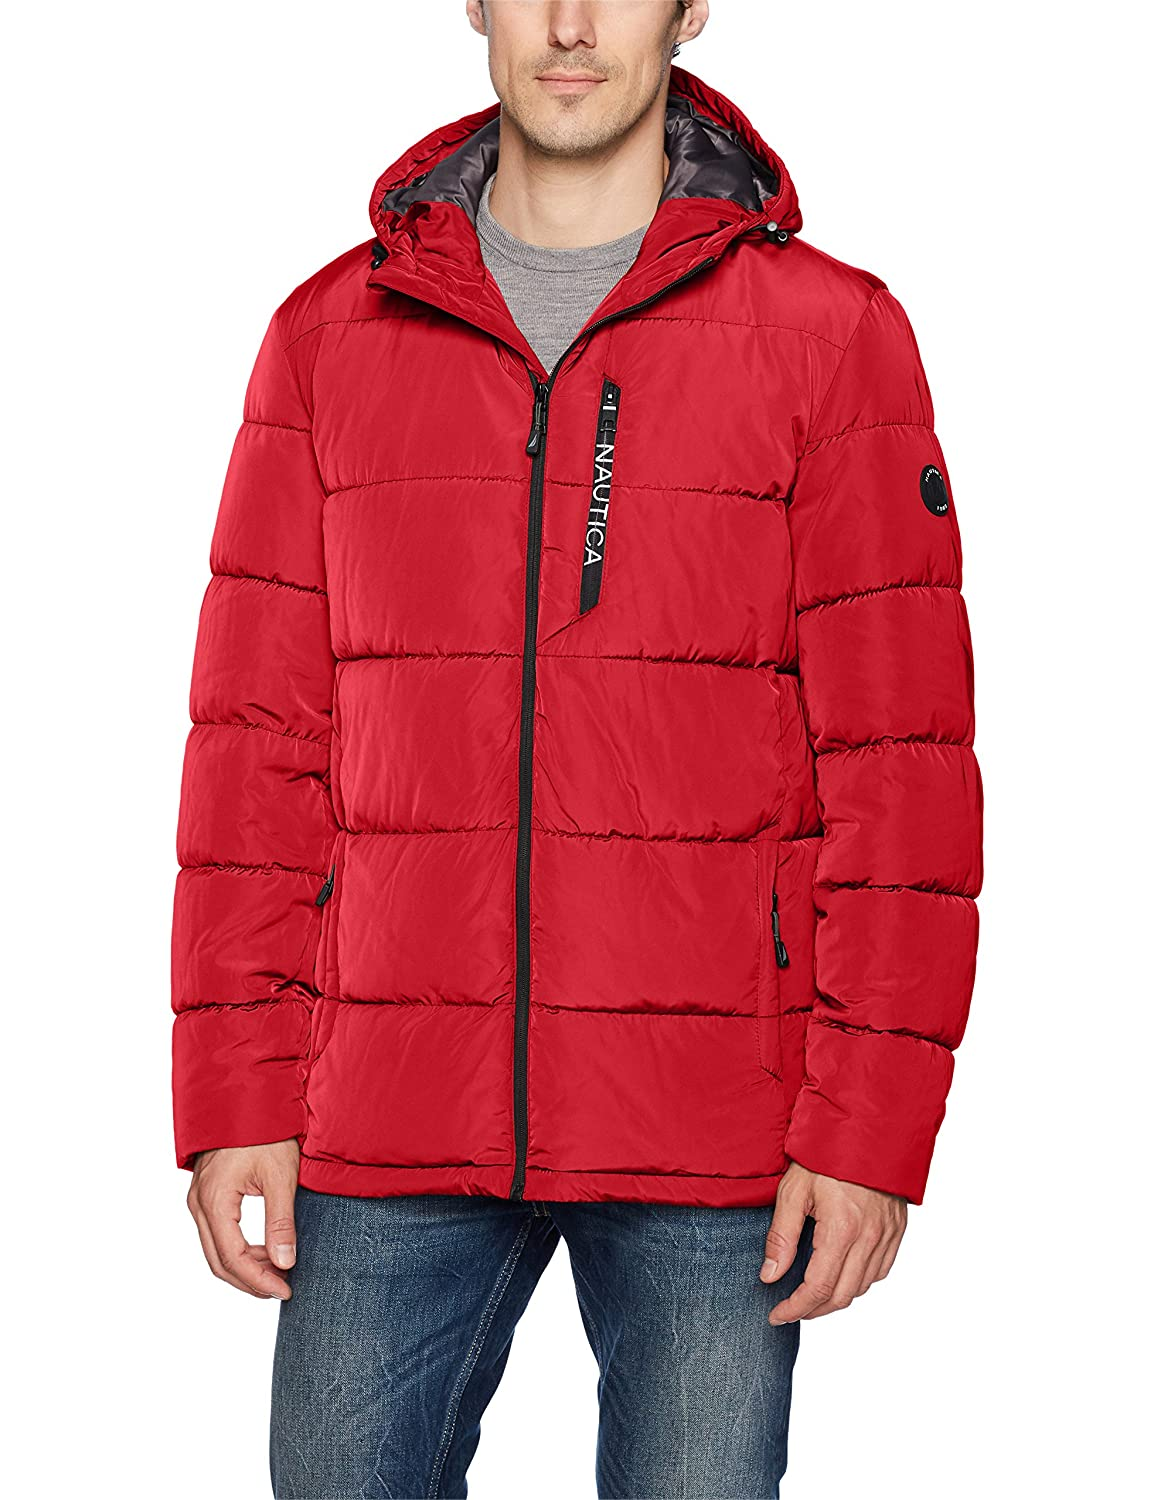 Nautica Men's Quilted Hooded Parka Jacket Nautica Men's Outerwear NV620252